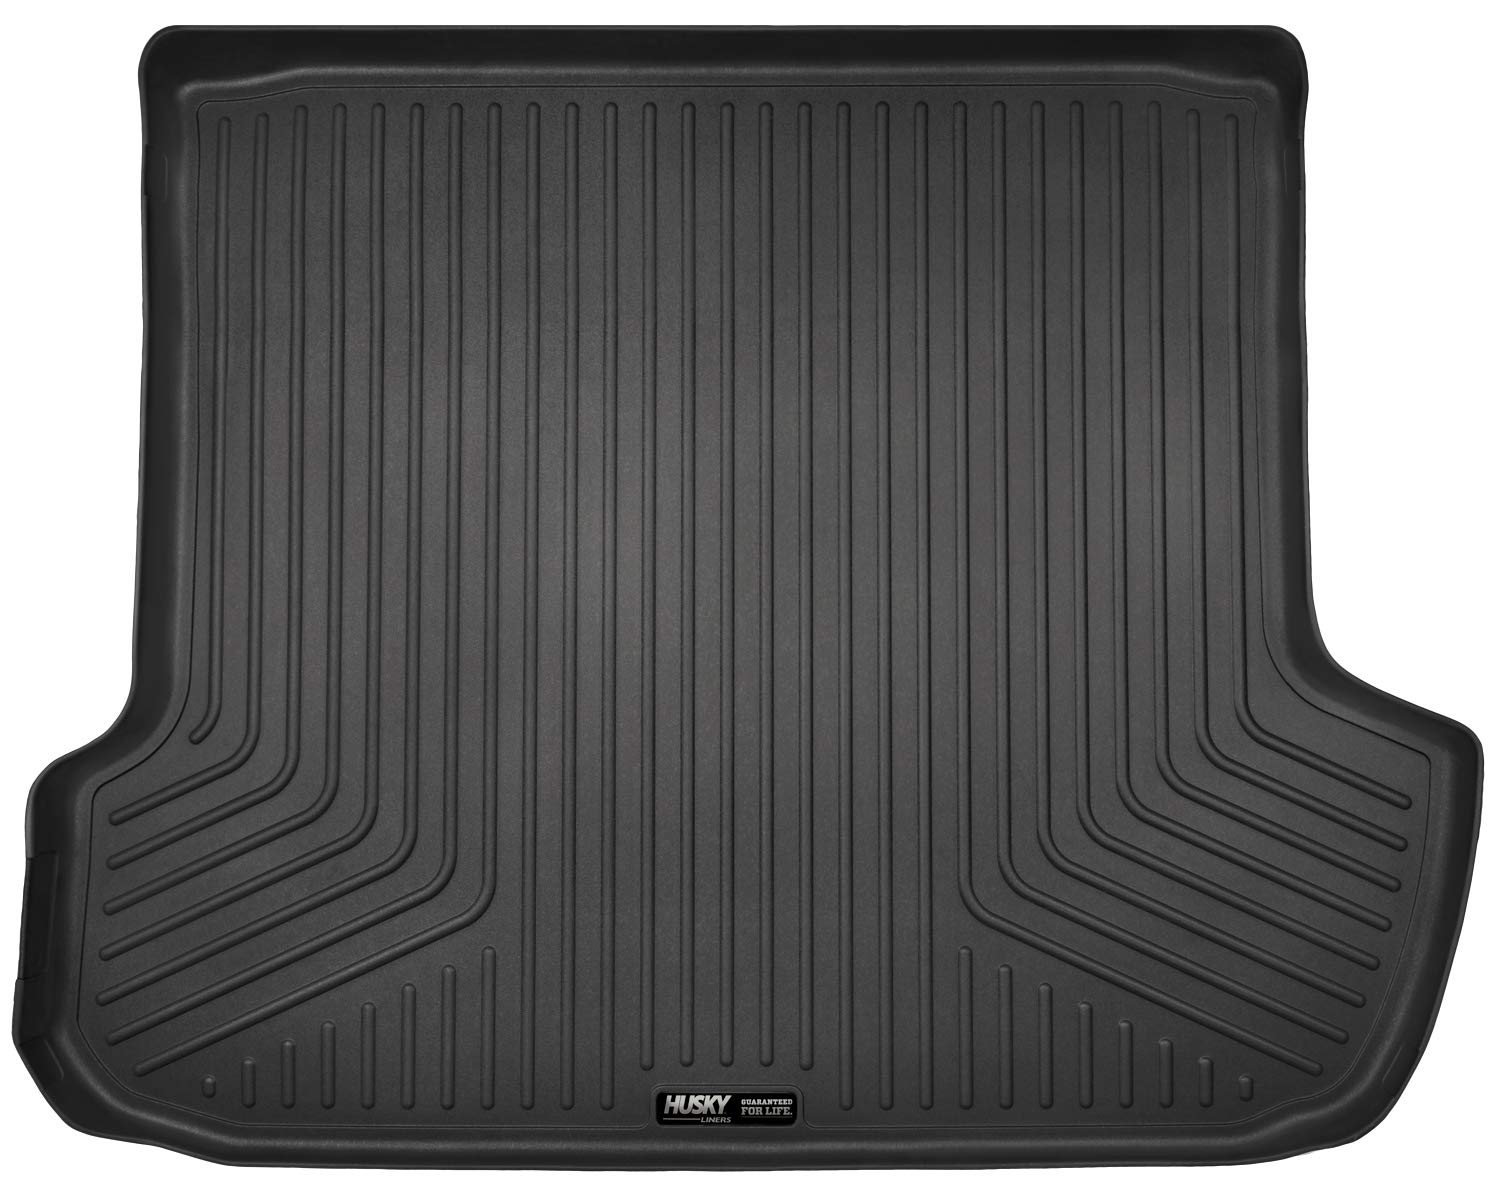 Husky Liners Trunk Liner Fits 15-19 Outback